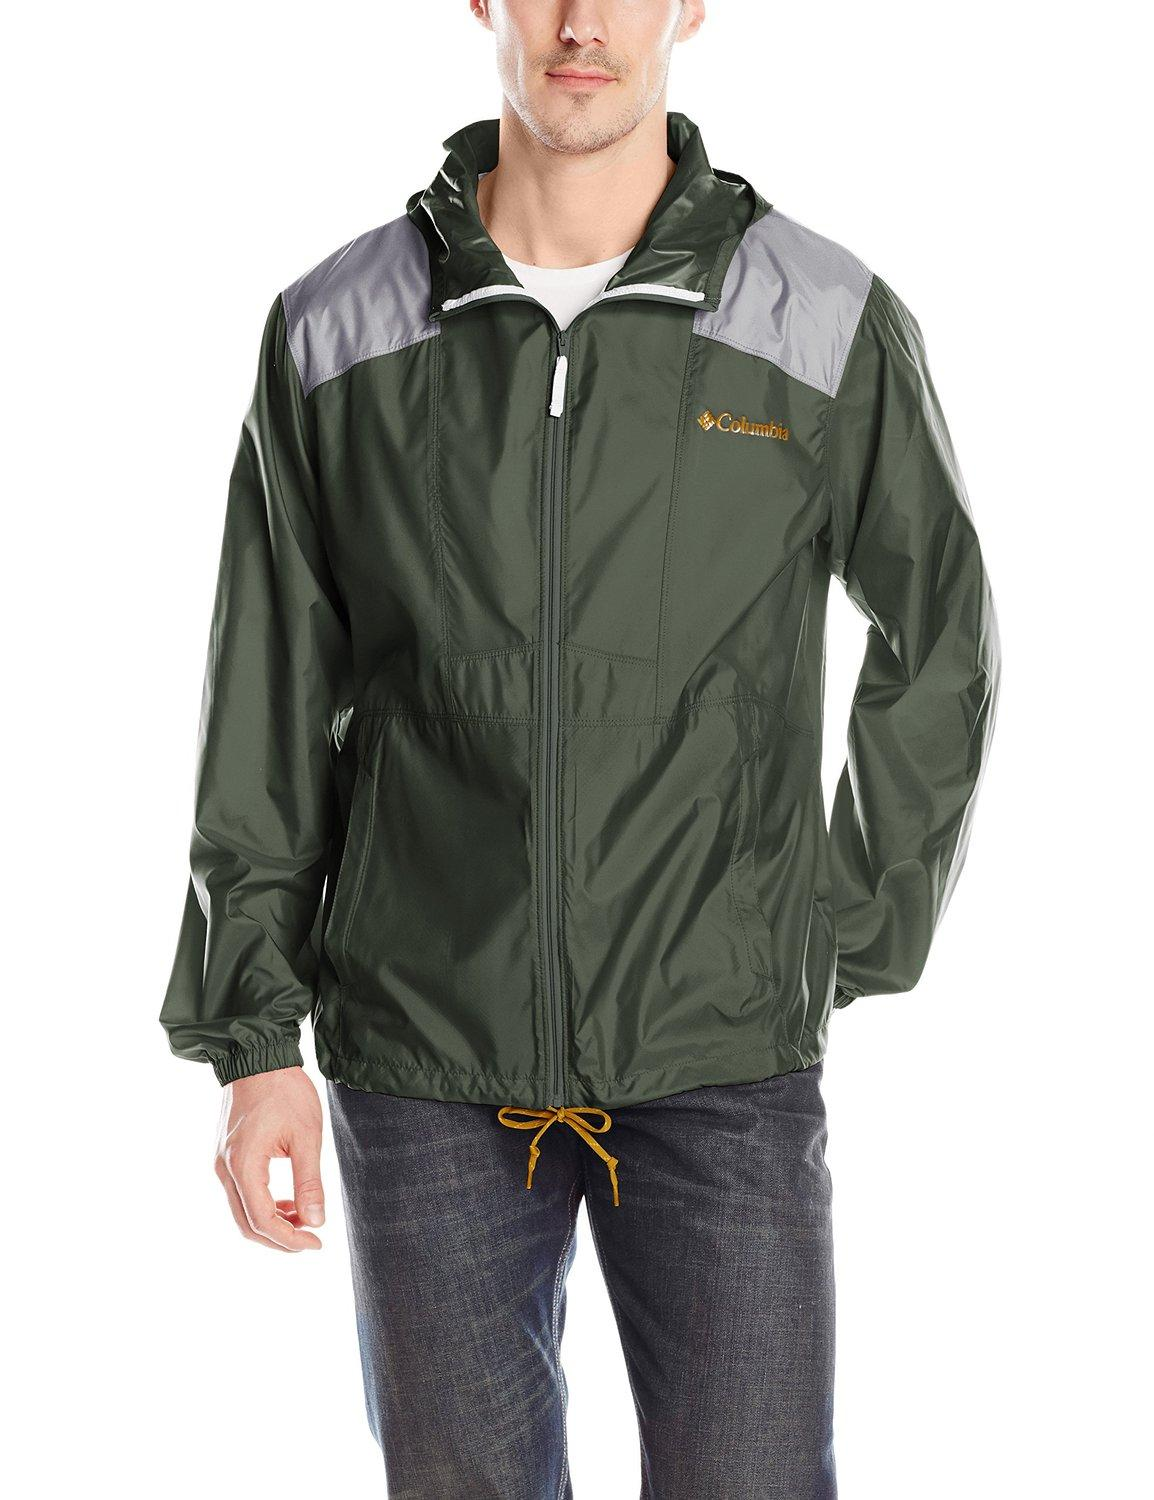 Columbia Men's Flashback Windbreaker Full Zip Jacket